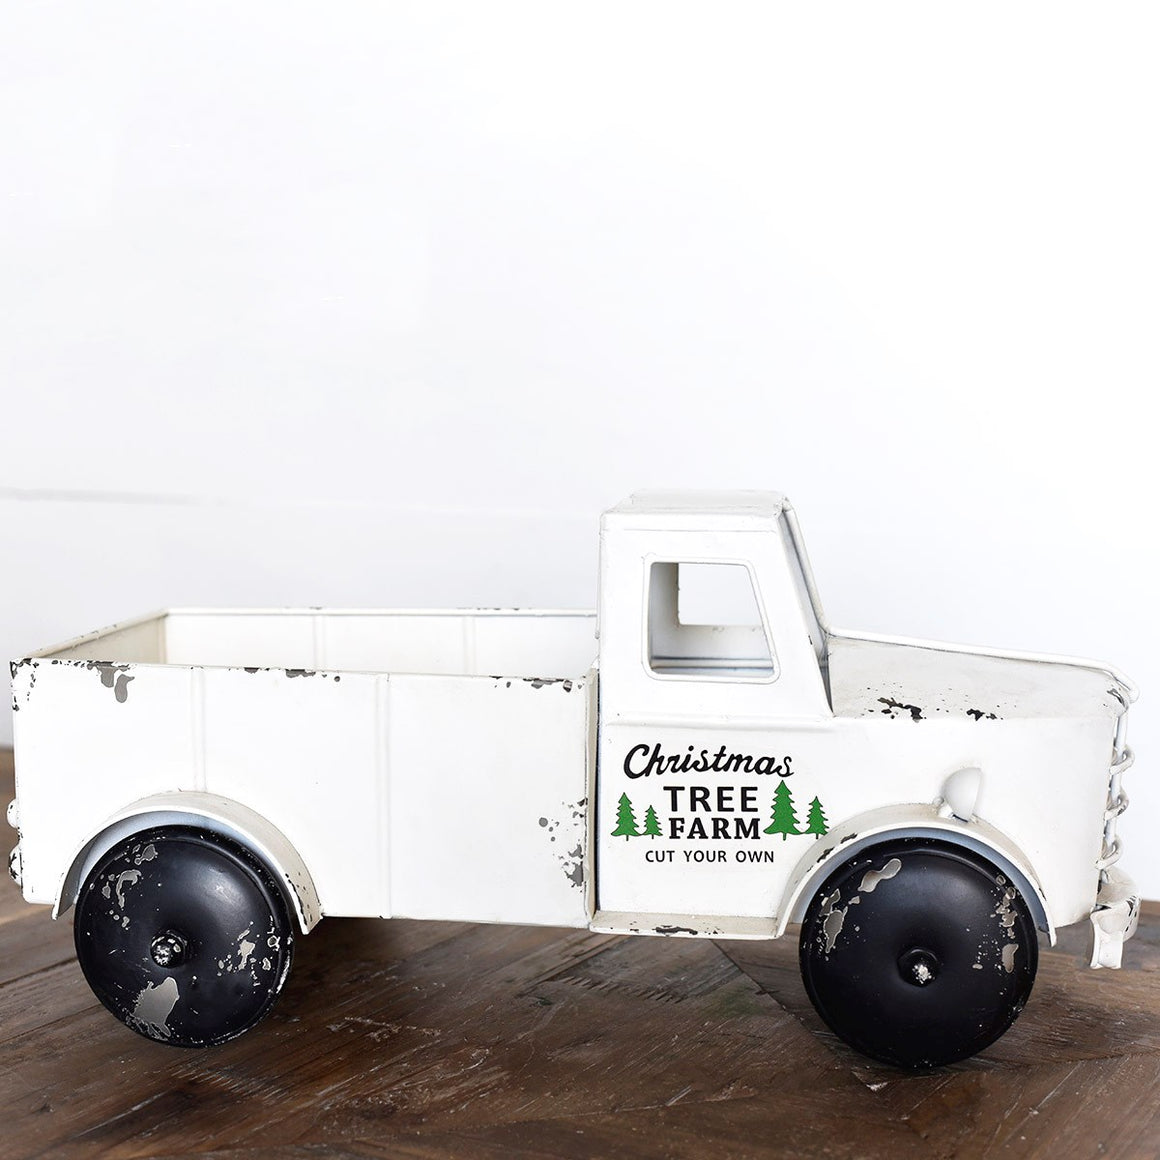 "Nothing says country living quite as well as a vintage pick-up truck. Since most us can't have a real one to tool around in, we bring you this small toy replica to add a little whimsy to your Christmas farmhouse decor. Our vintage style White Christmas Tree Farm Truck, made of metal, is a charming reproduction that will brighten any bookshelf or tabletop. Pack with a small faux Christmas Trees for added charm. 17.5""L X 8""W X 8.25""H"